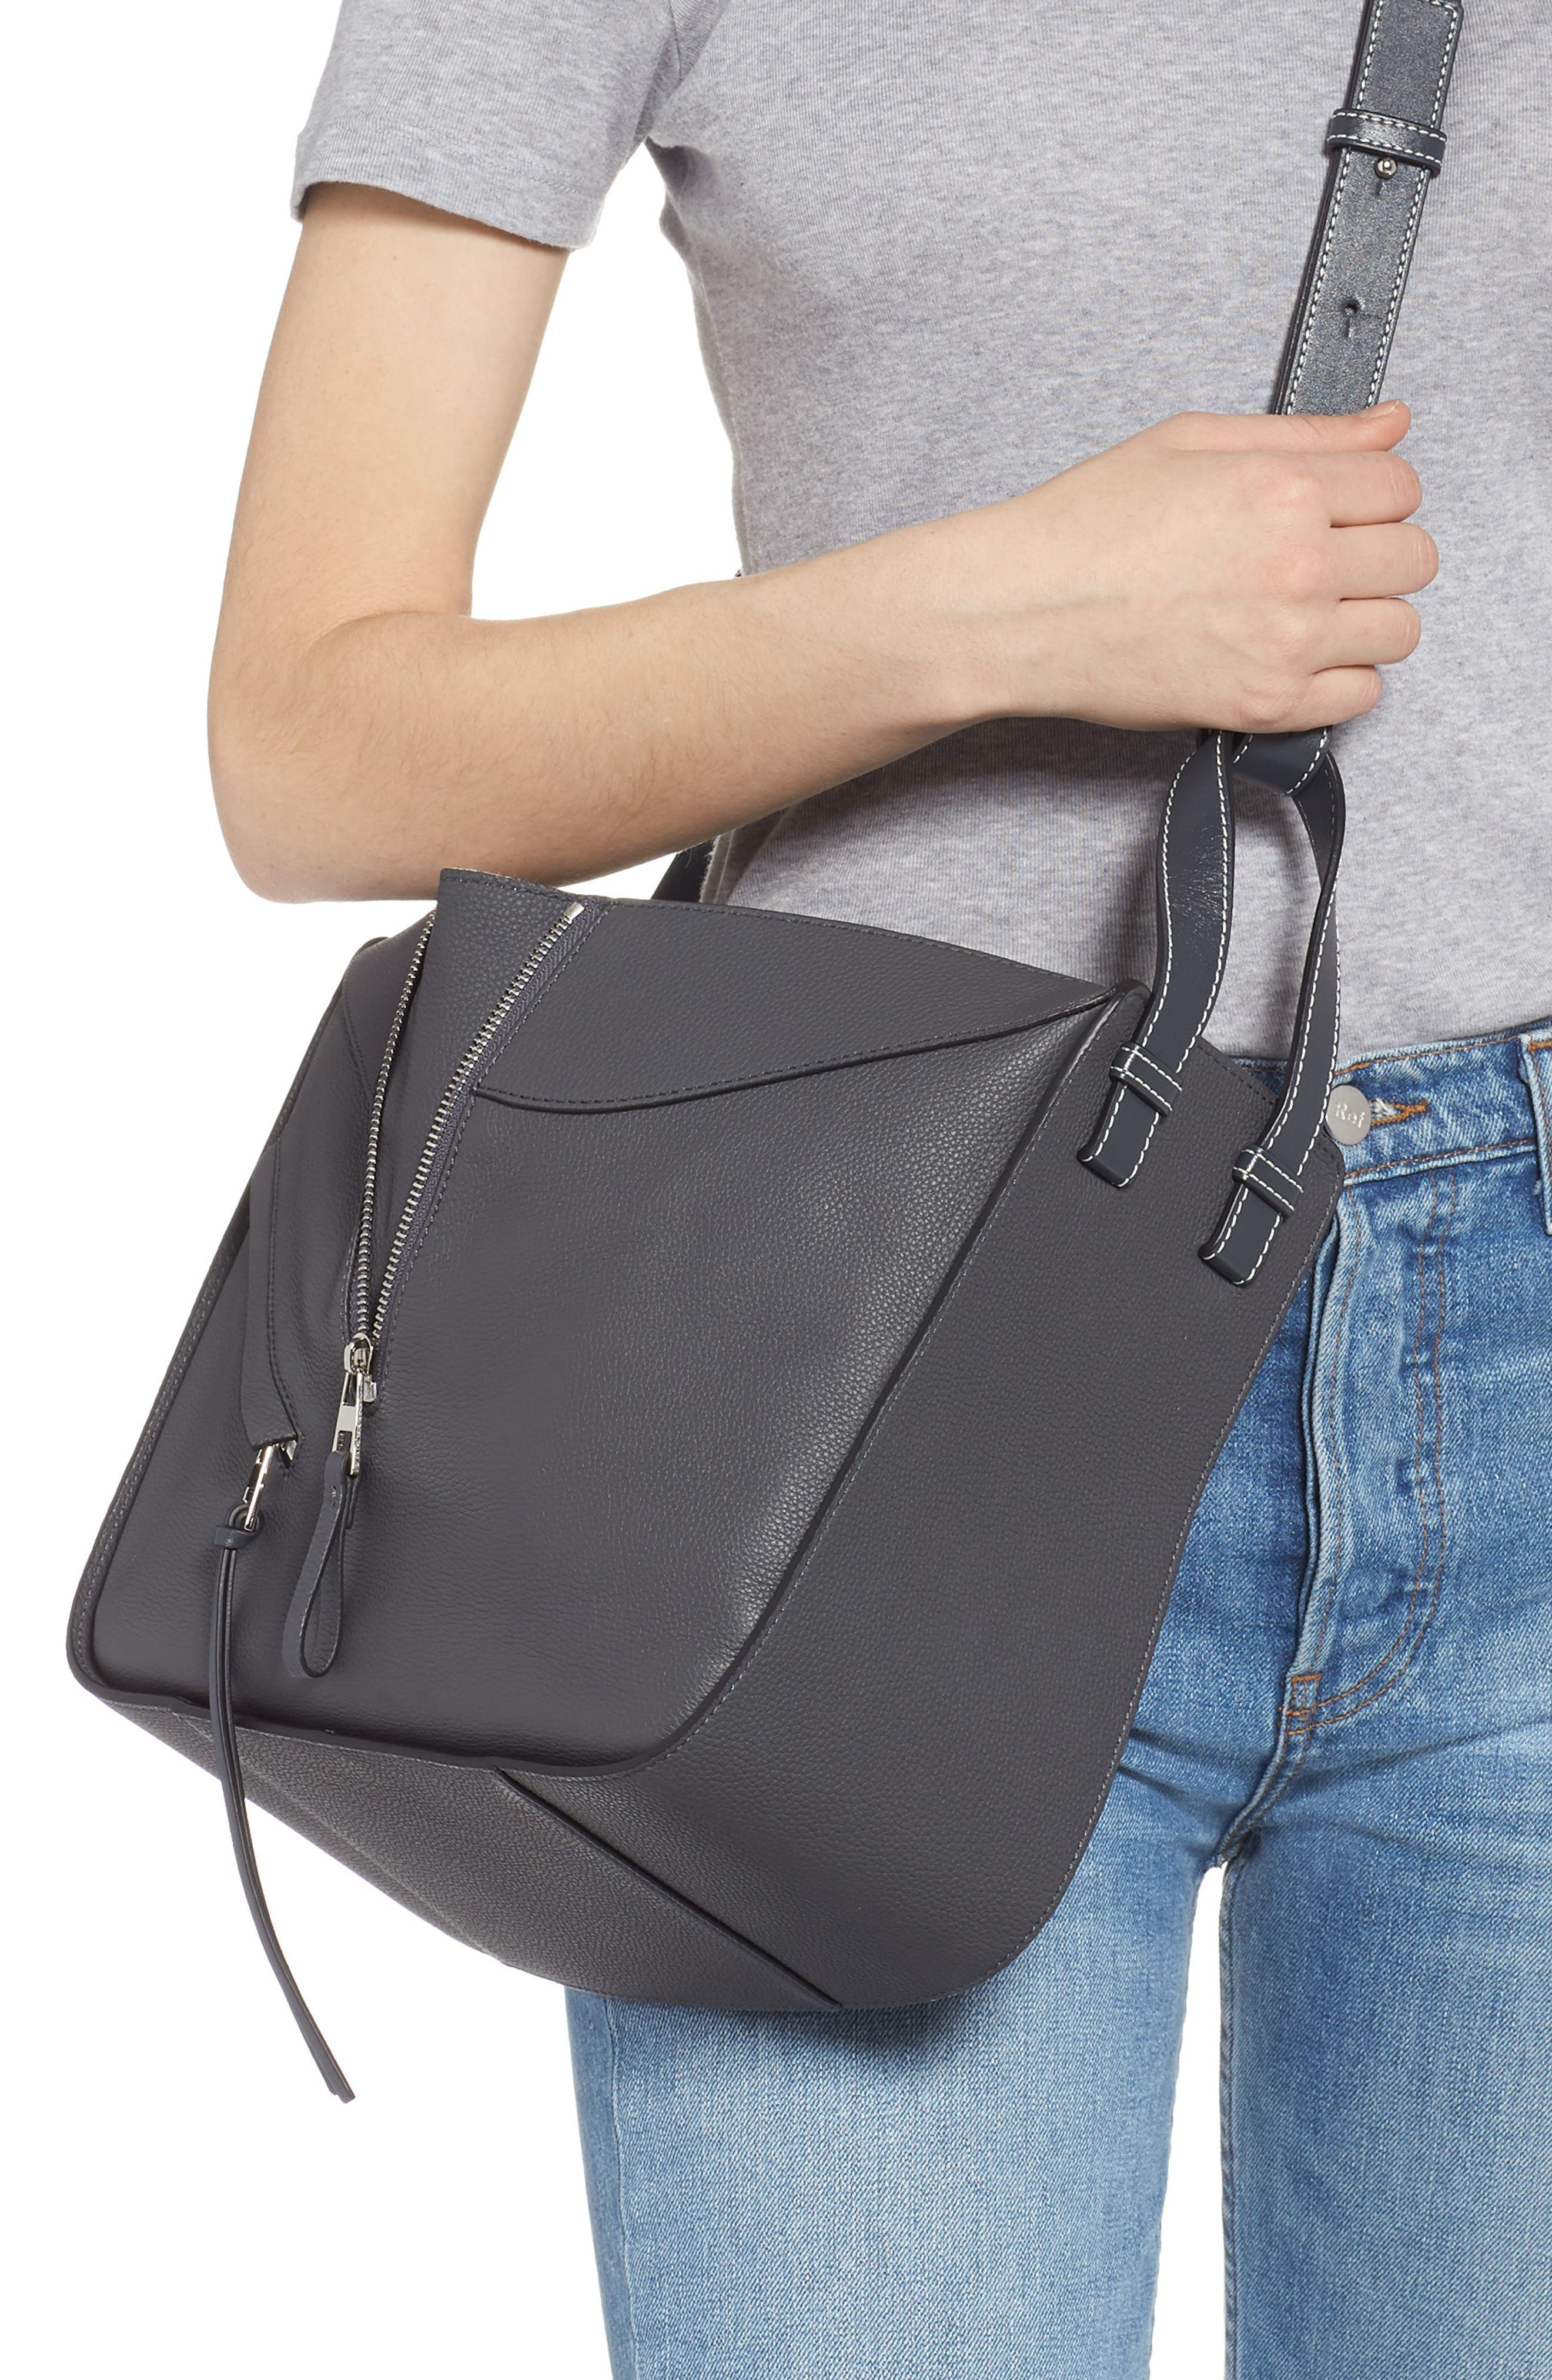 LOEWE,                             Small Hammock Pebbled Leather Hobo,                             Alternate thumbnail 2, color,                             ANTHRACITE